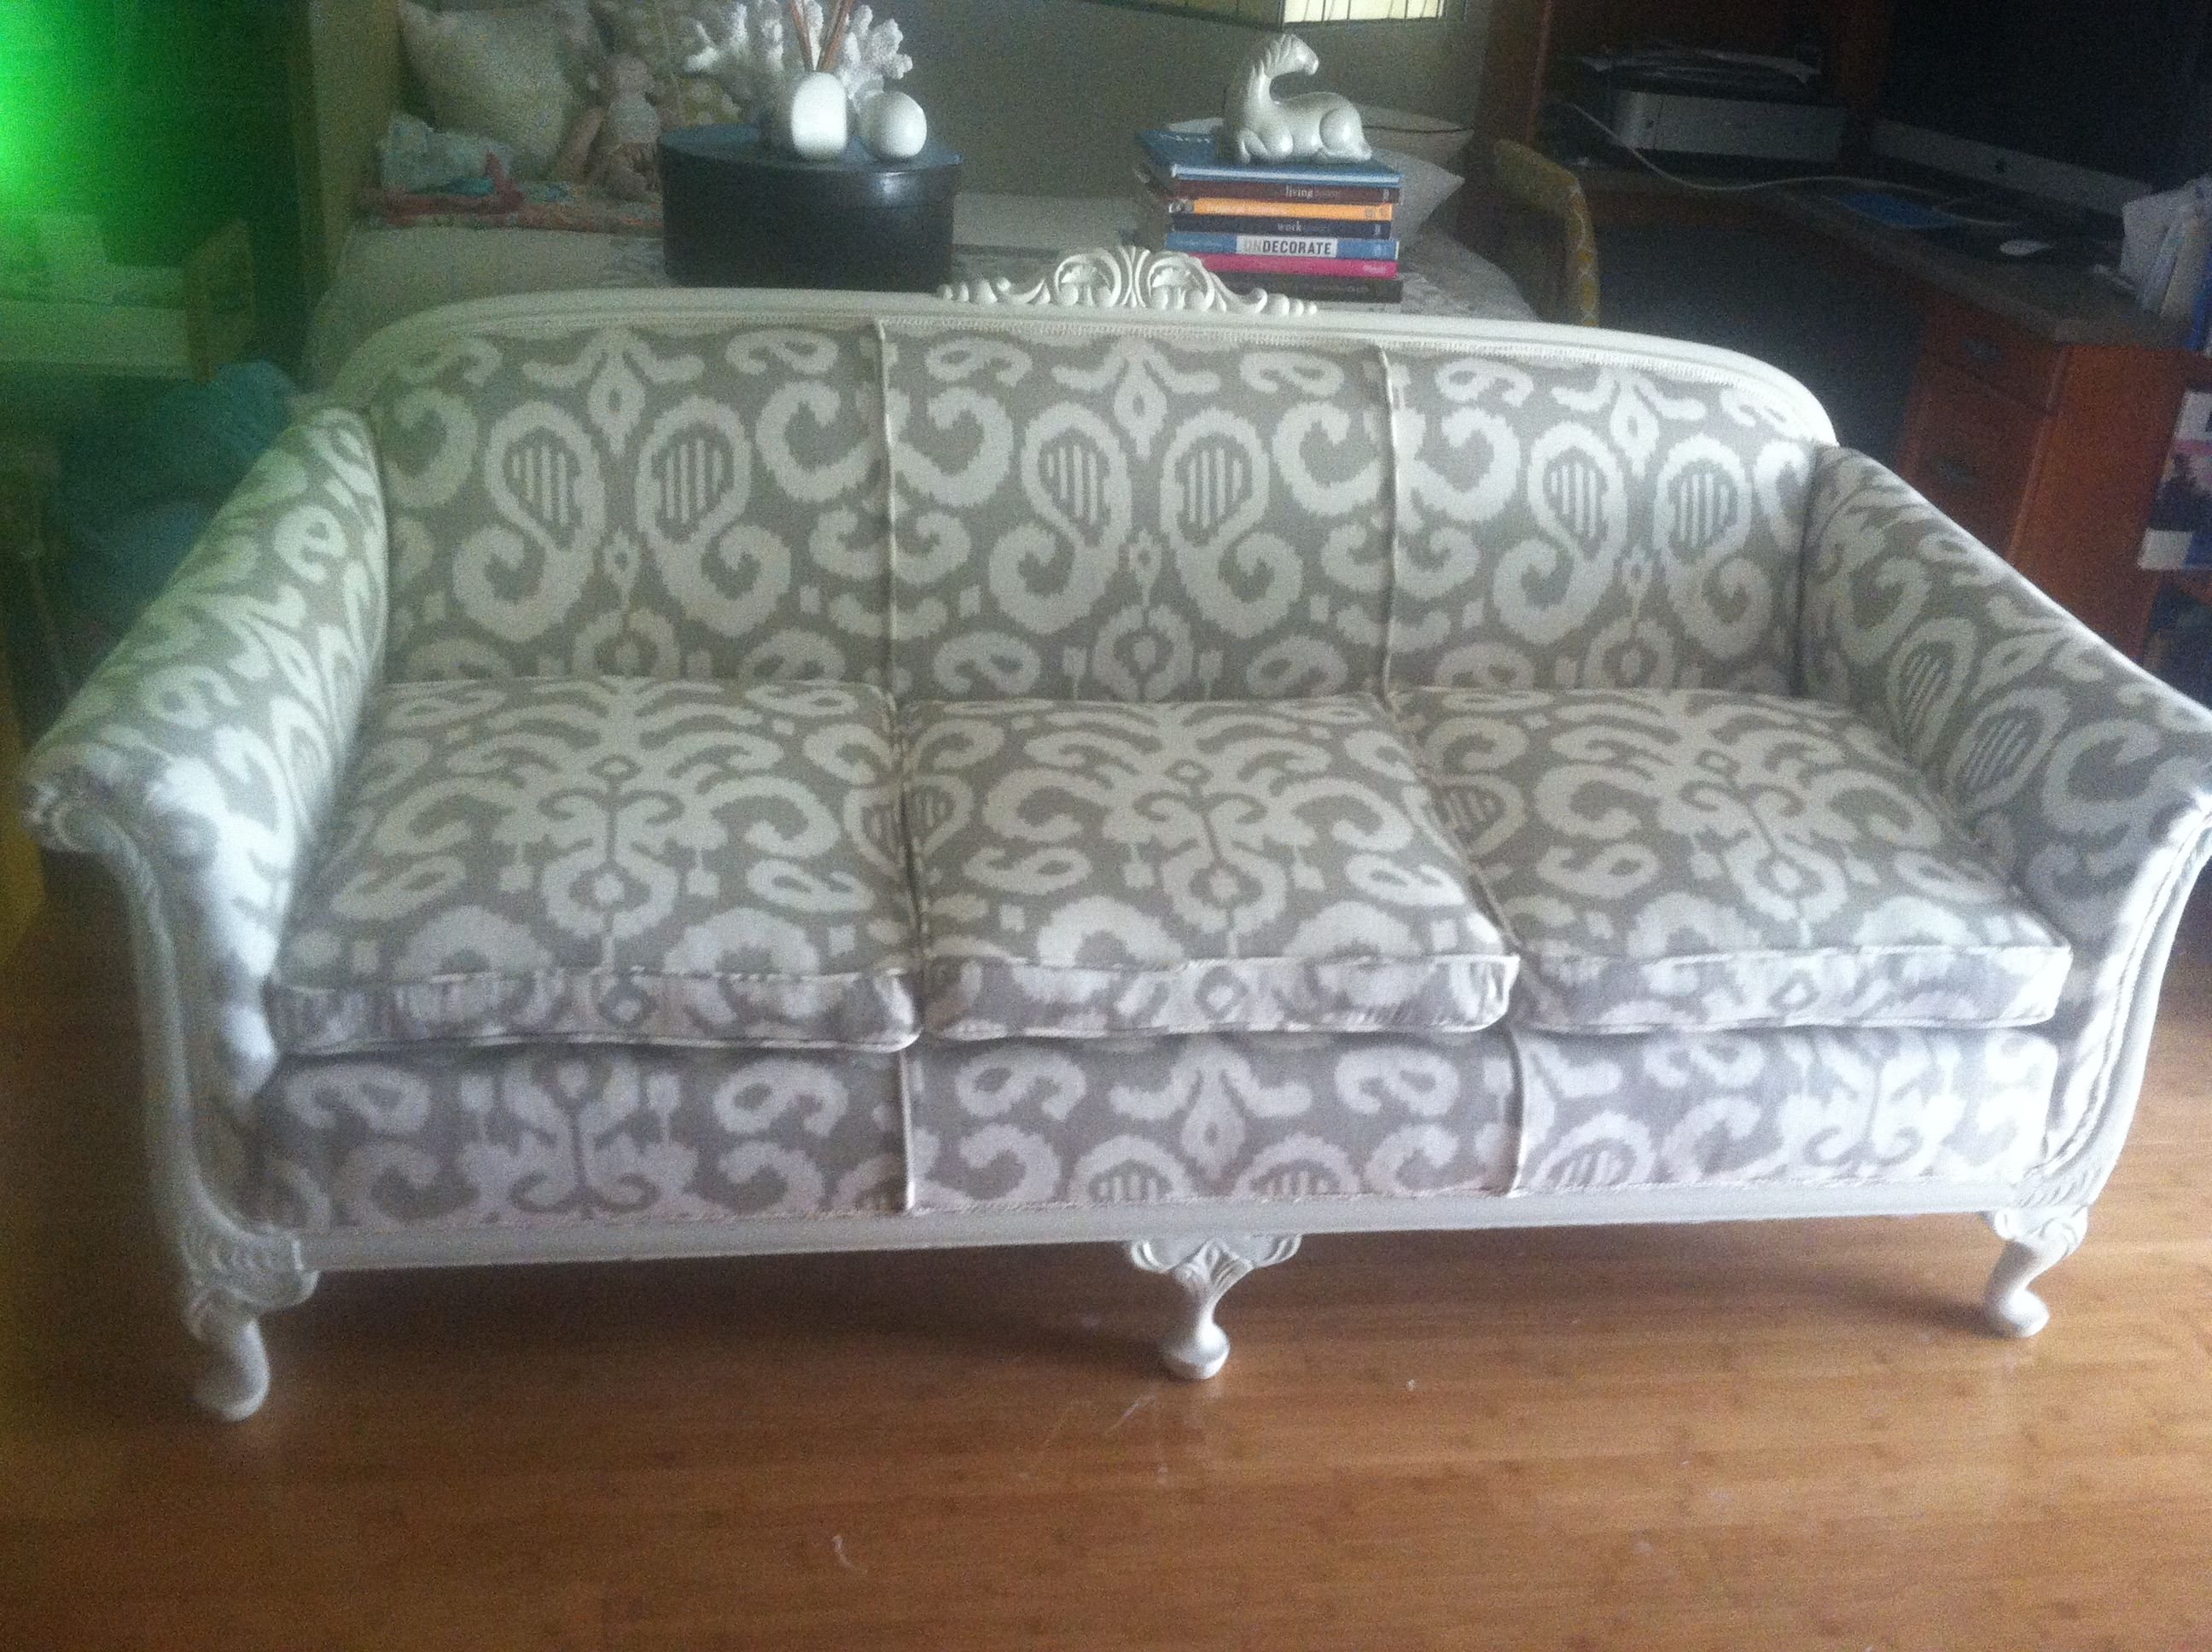 Companies That Reupholster Sofas Sofa Cushion Support Slats Just Finished Reupholstering This 100 Year Old Couch